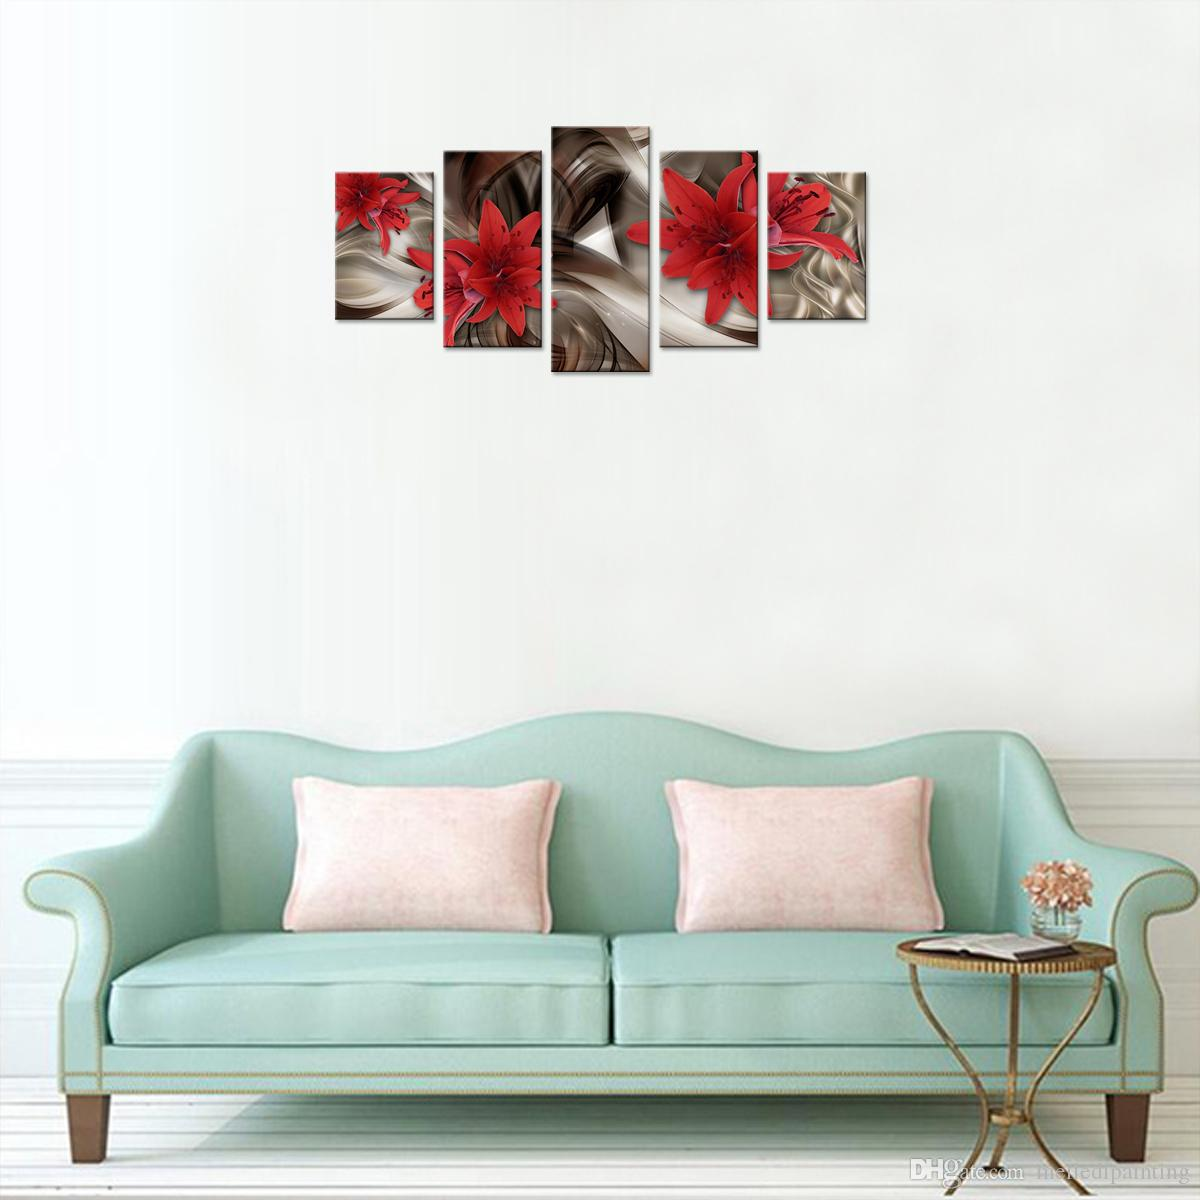 Amosi Art 5 Pieces Canvas Red Lily Flower Wall Art Print for Living Room Bedroom Office Painting Wall Home Decorations Artwork Unframed